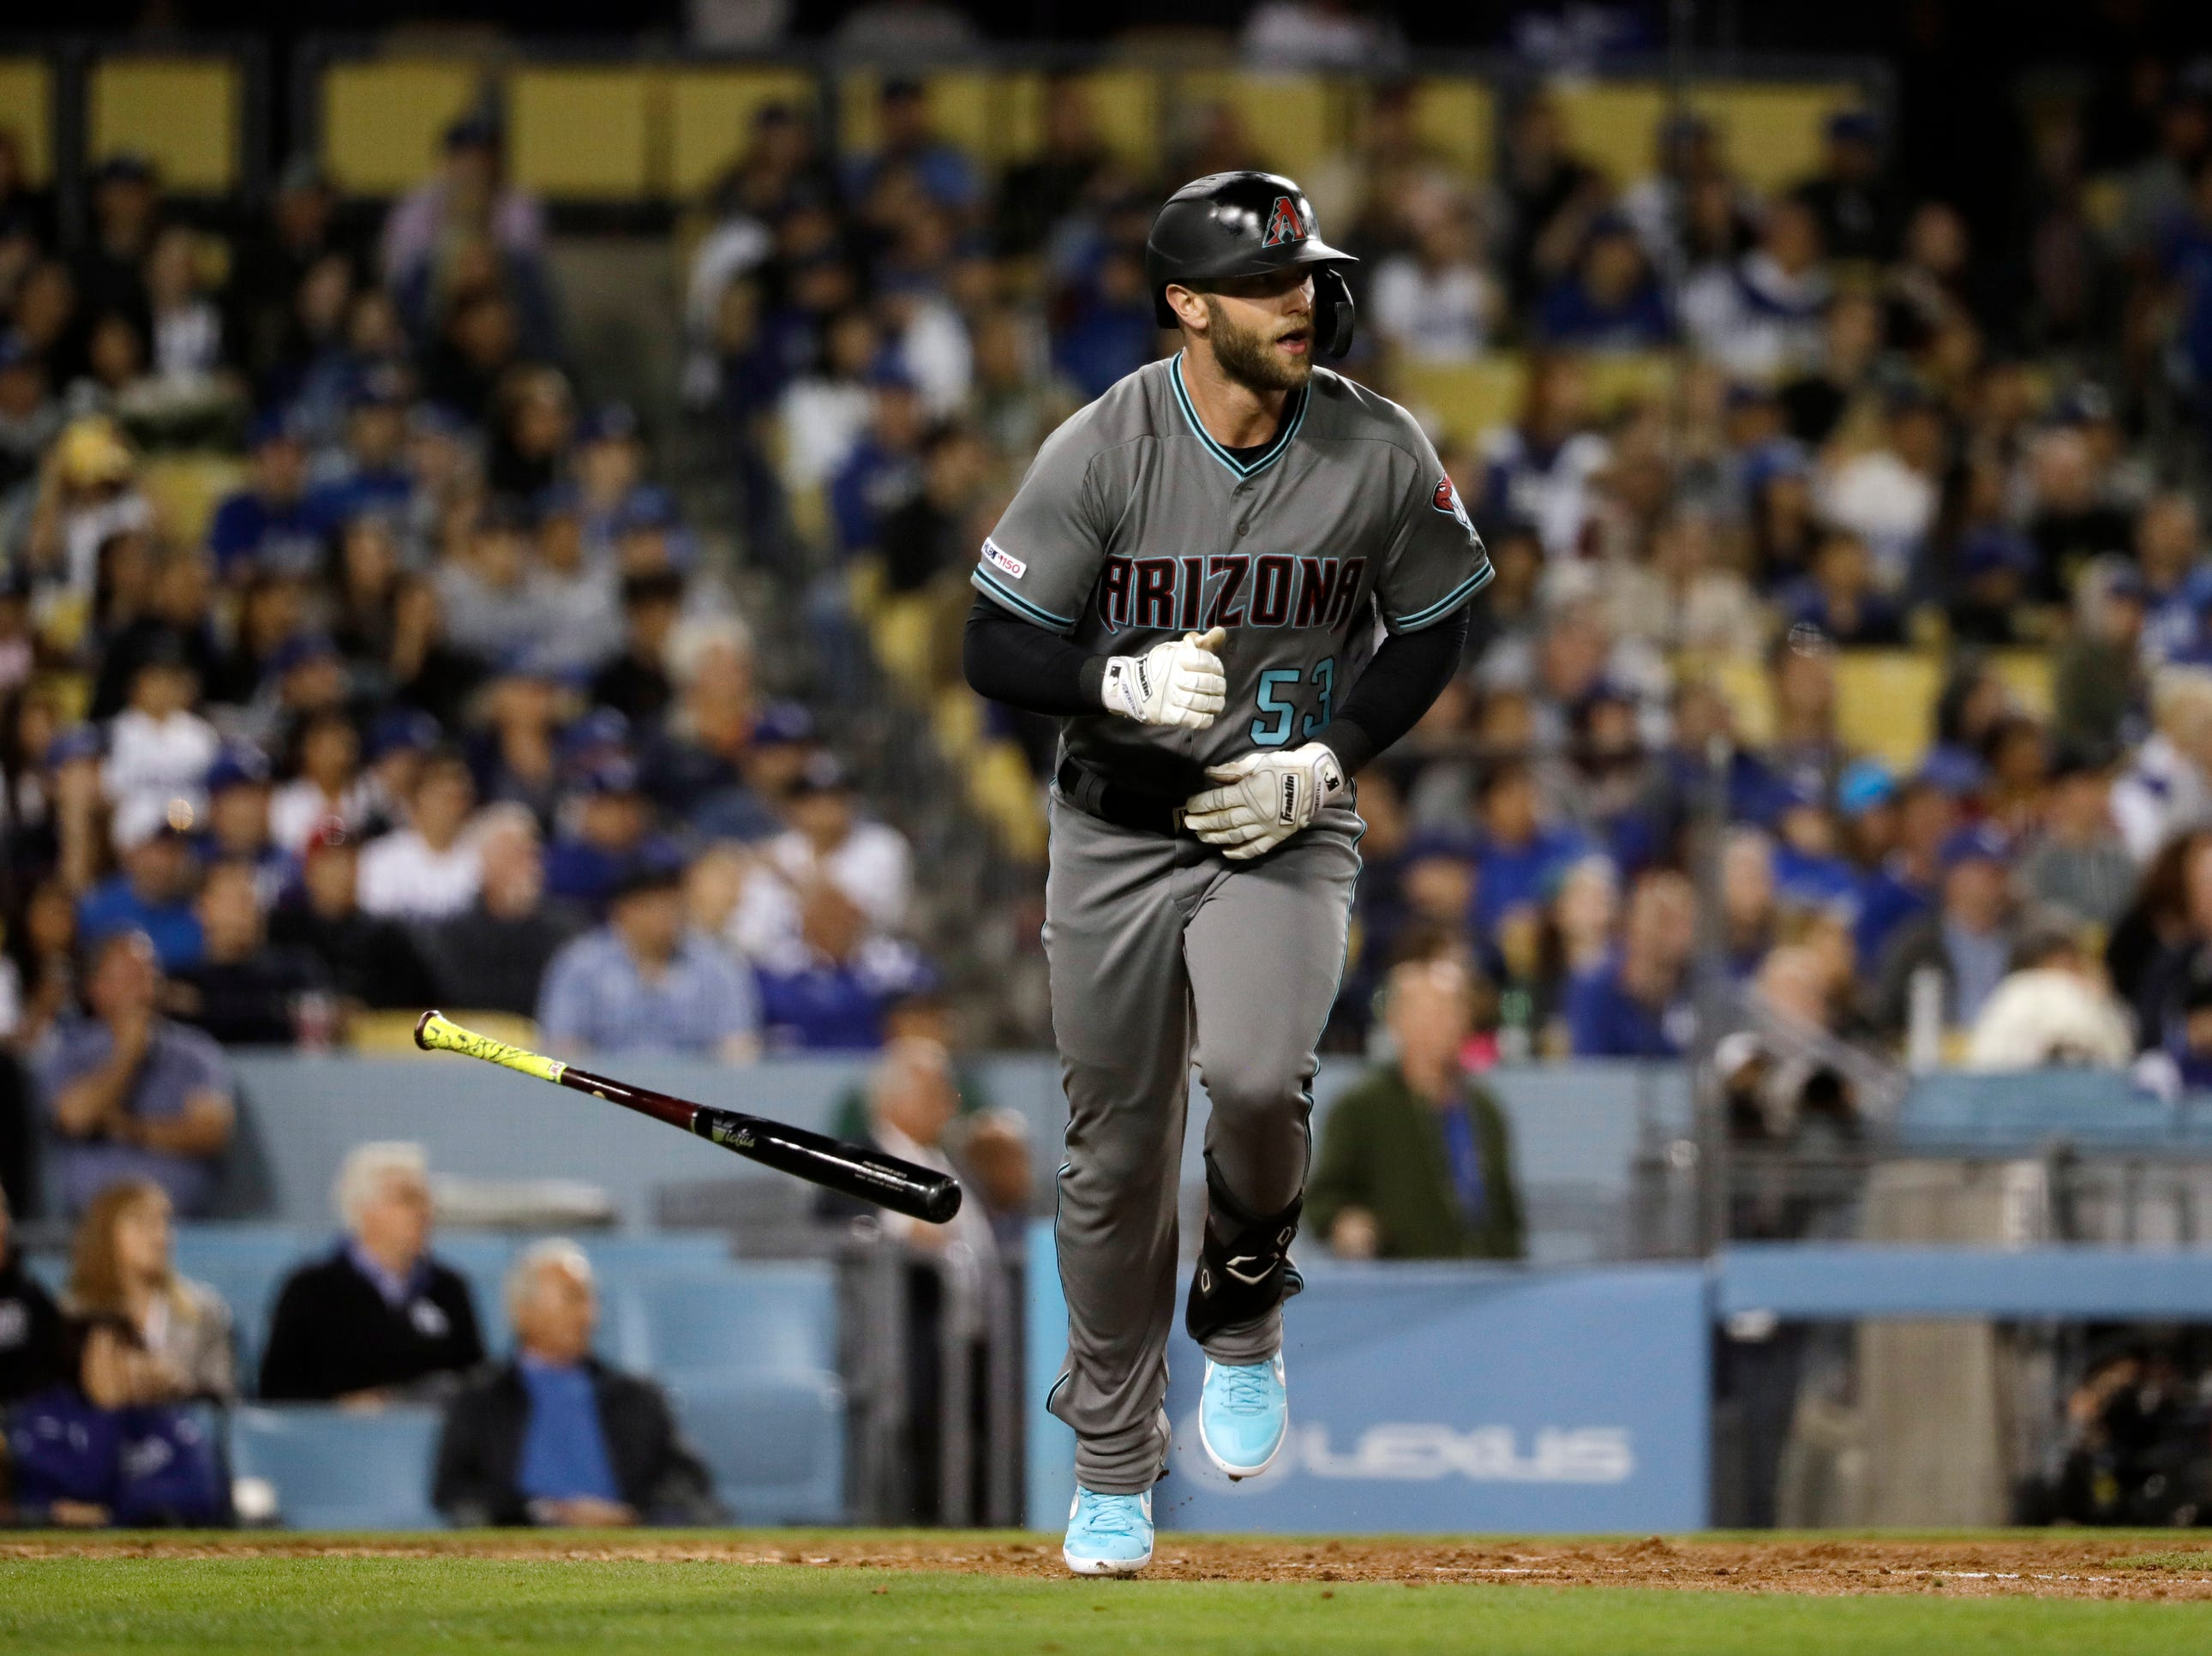 Arizona Diamondbacks' Christian Walker drops his bat after hitting a three-run home run against the Los Angeles Dodgers during the seventh inning of a baseball game Friday, March 29, 2019, in Los Angeles. (AP Photo/Marcio Jose Sanchez)